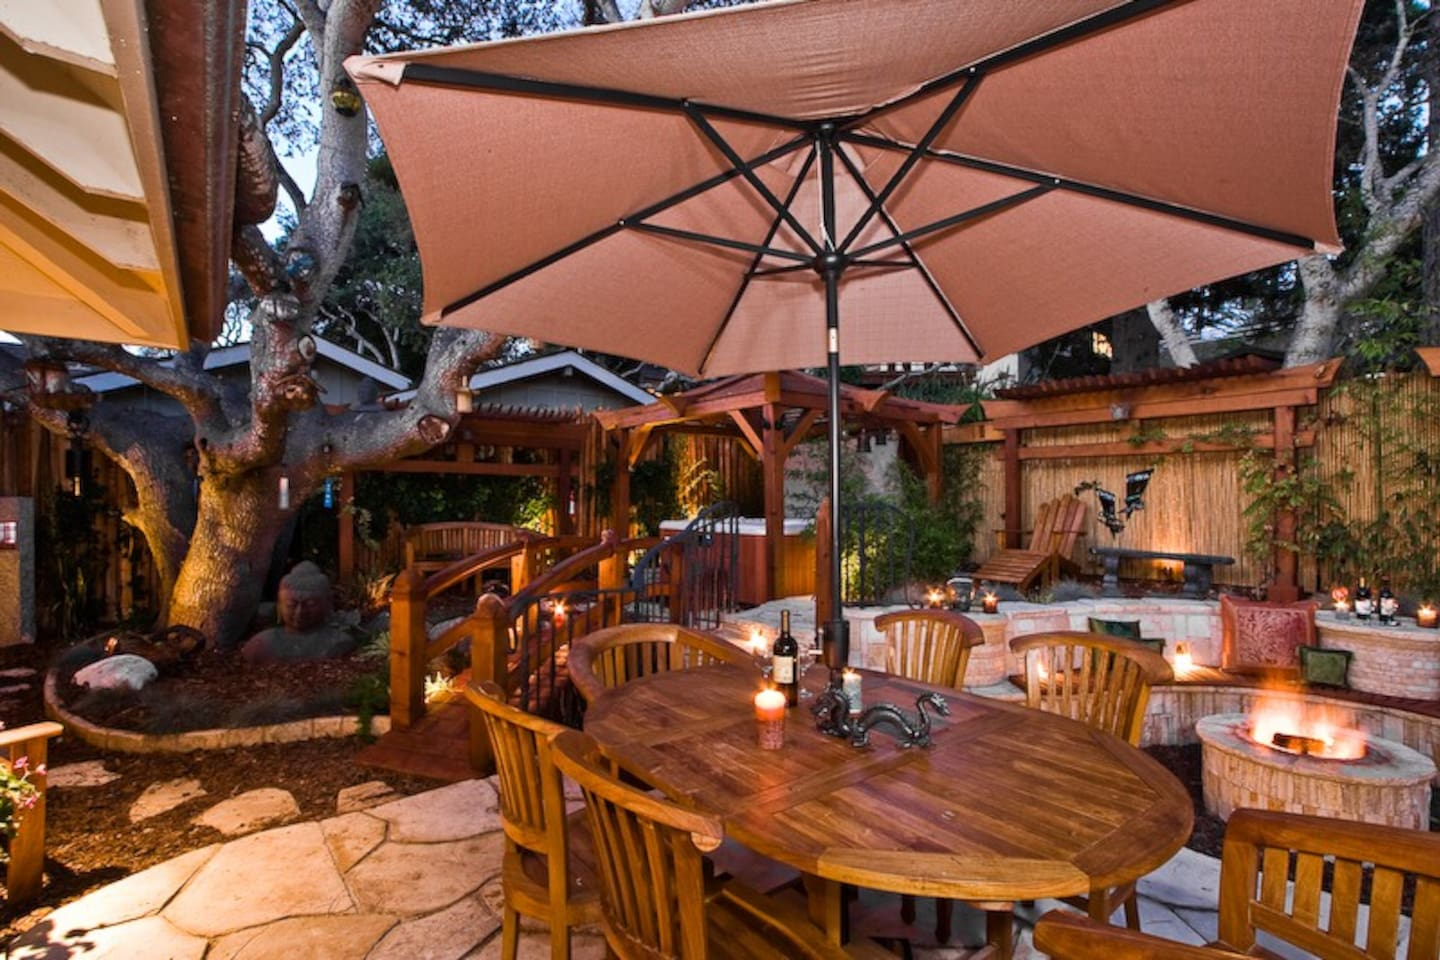 DragonsFyre's back garden with table seating for six under a shade umbrella.